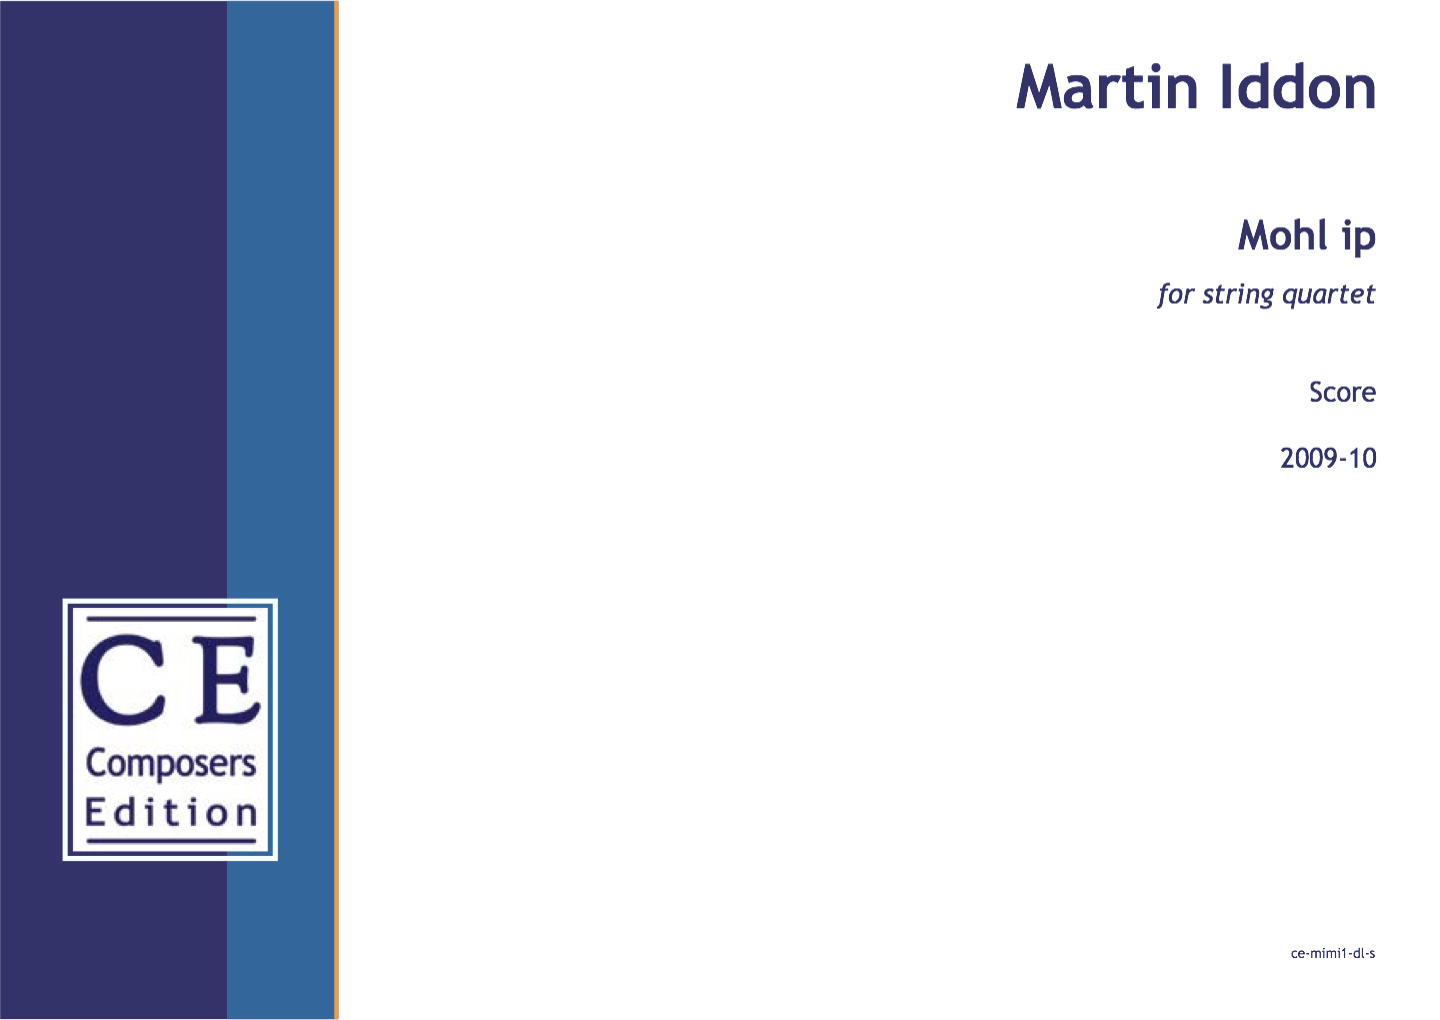 Martin Iddon: Mohl ip for string quartet